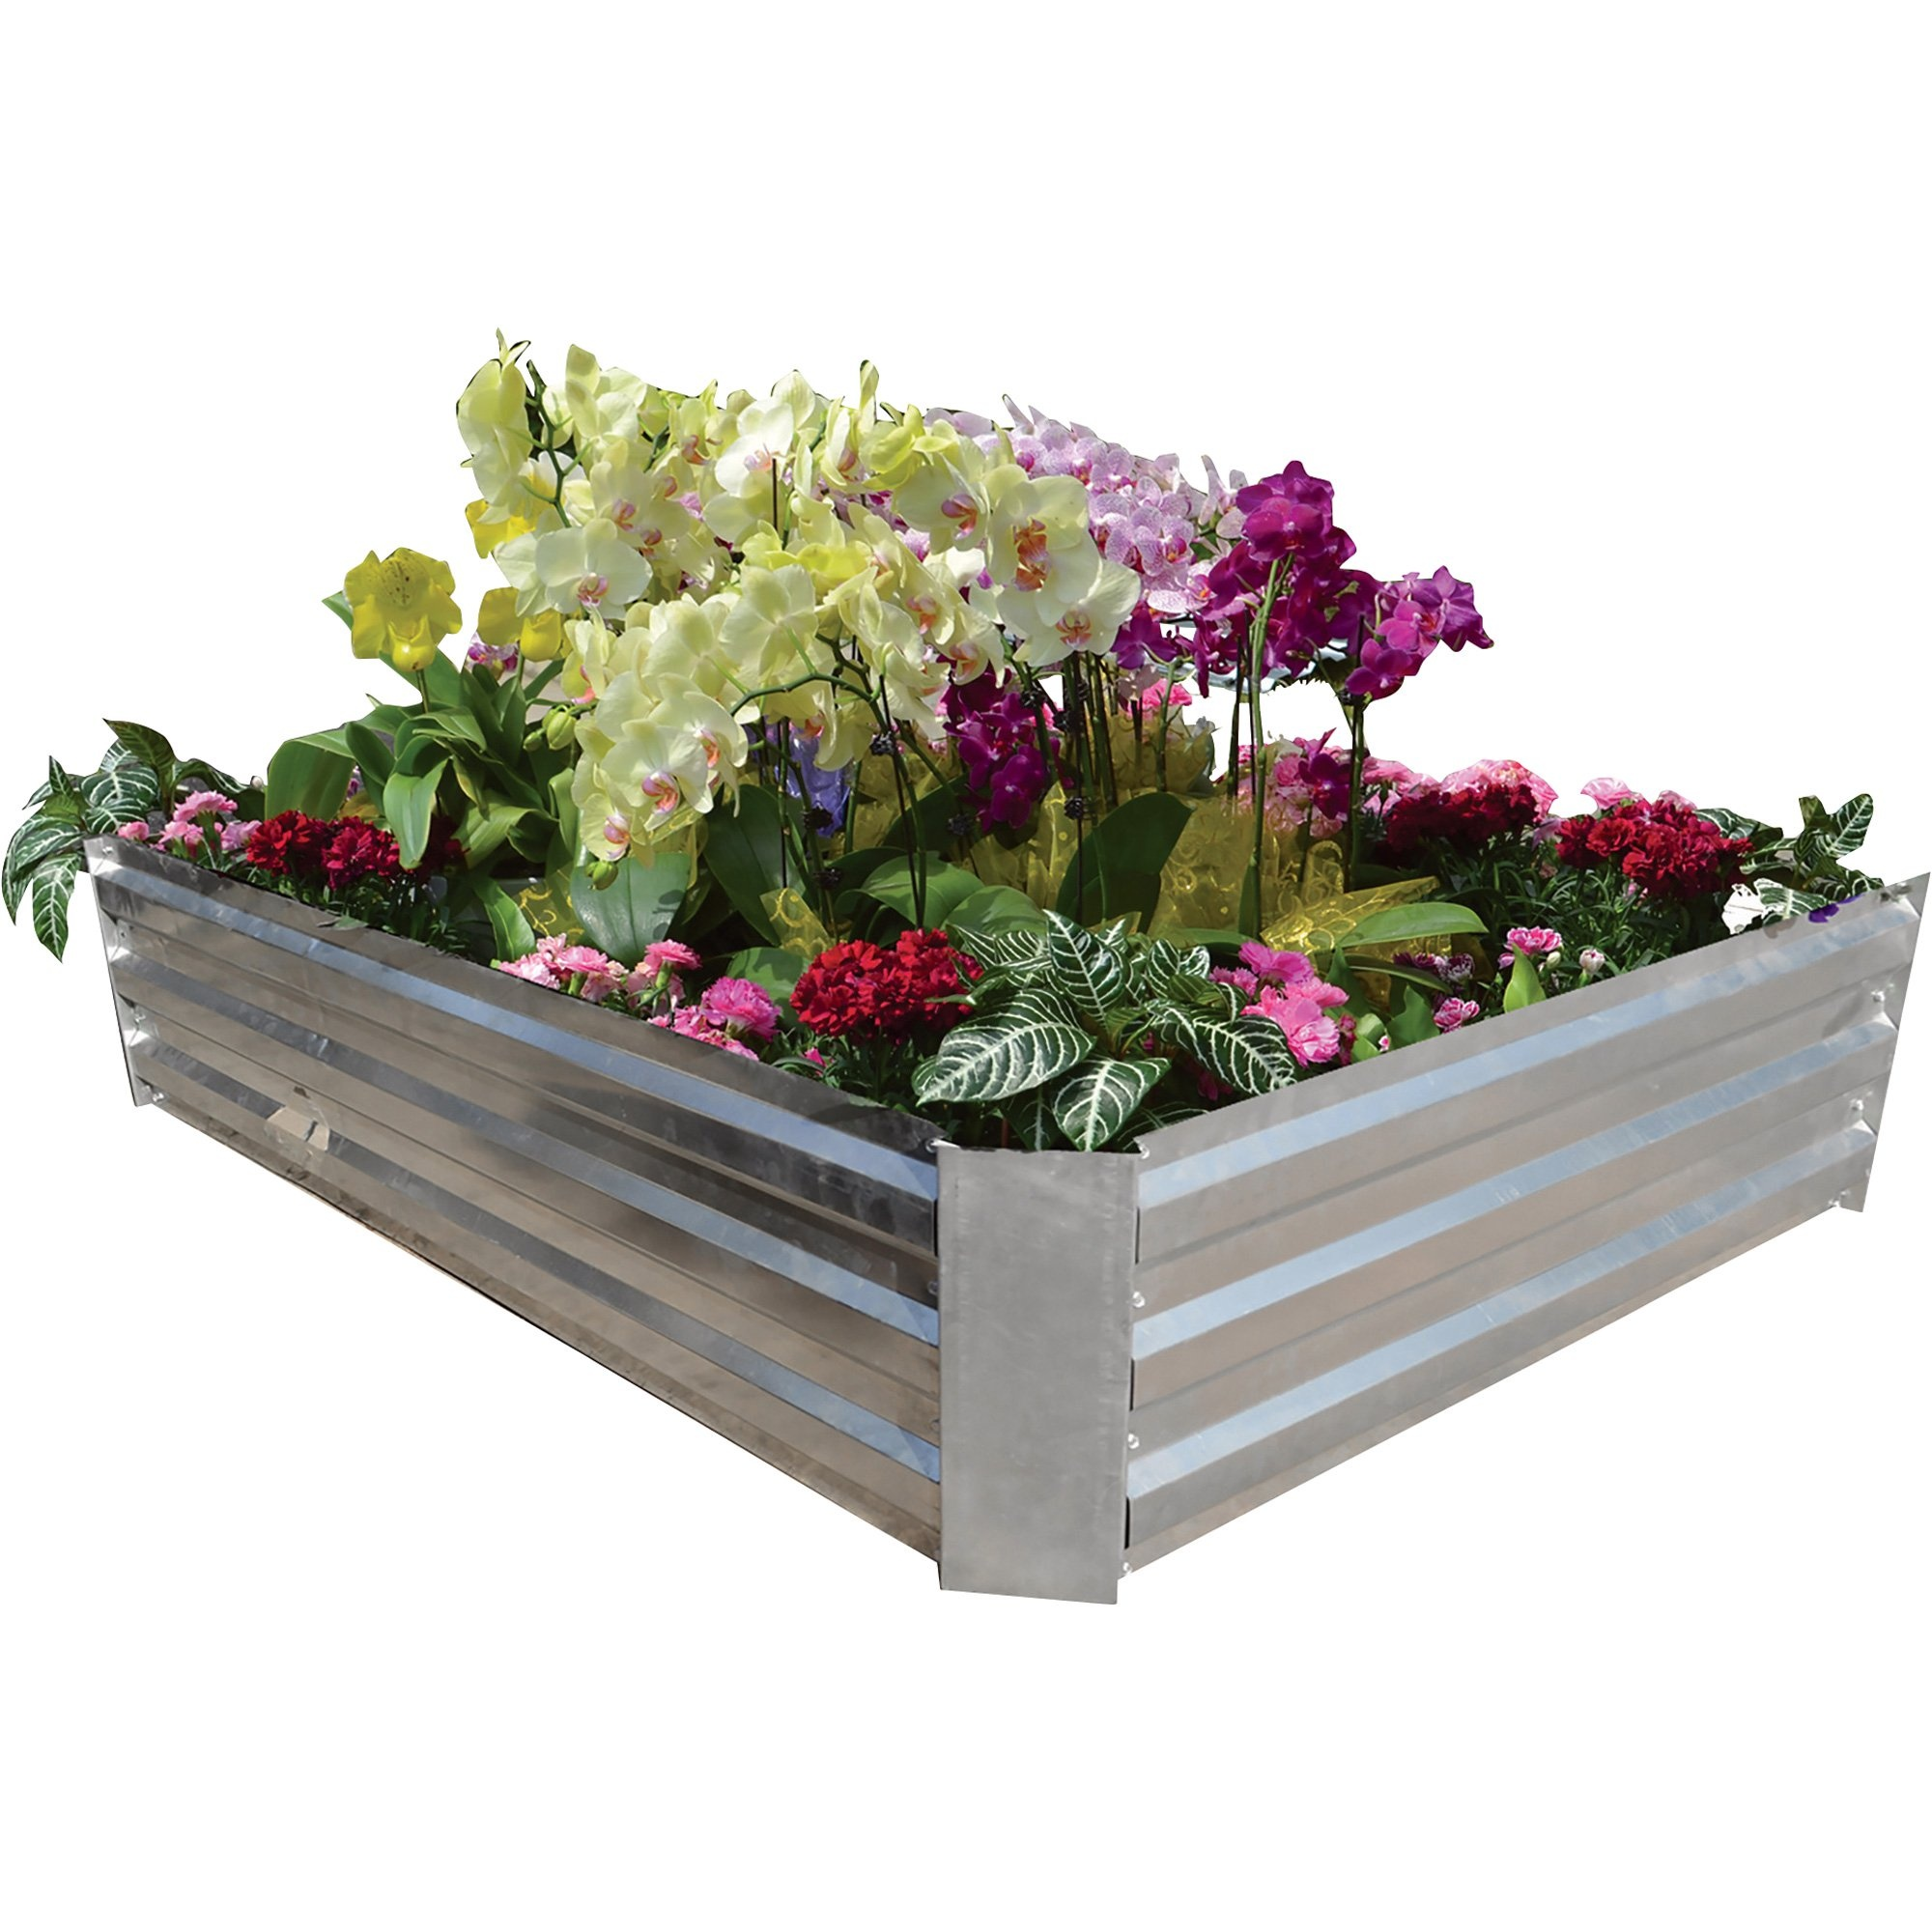 Pentagon Metal Galvanized Flower Planter Vegetable Plant Box Garden Bed